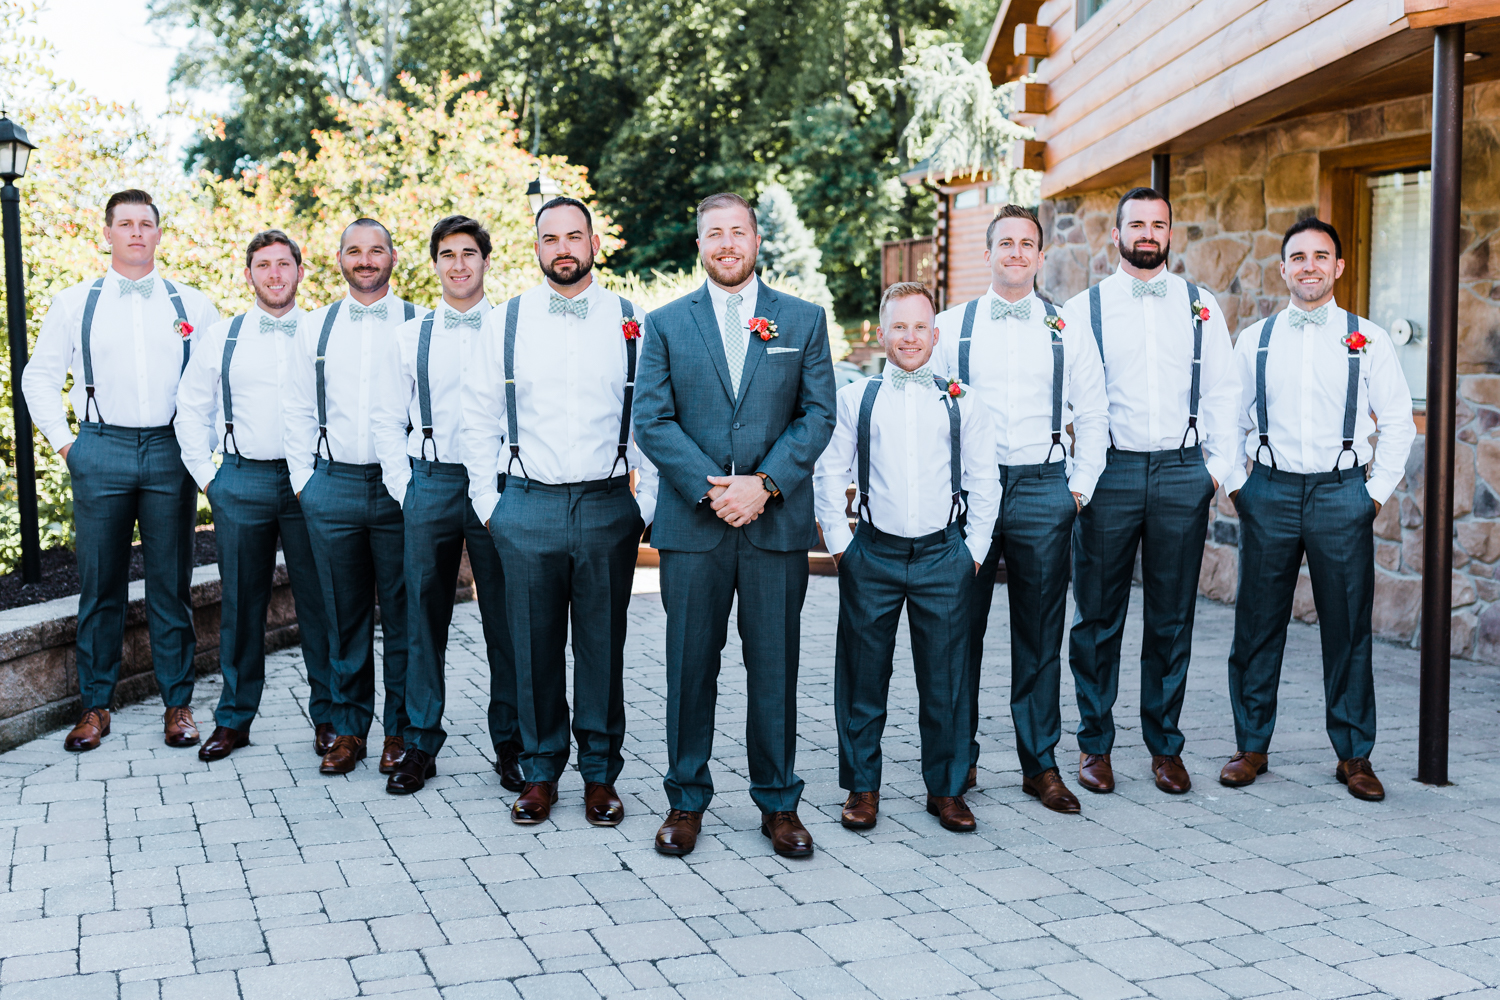 groom with his groomsmen - suspenders at wedding - mountain weddings - large party of groomsmen